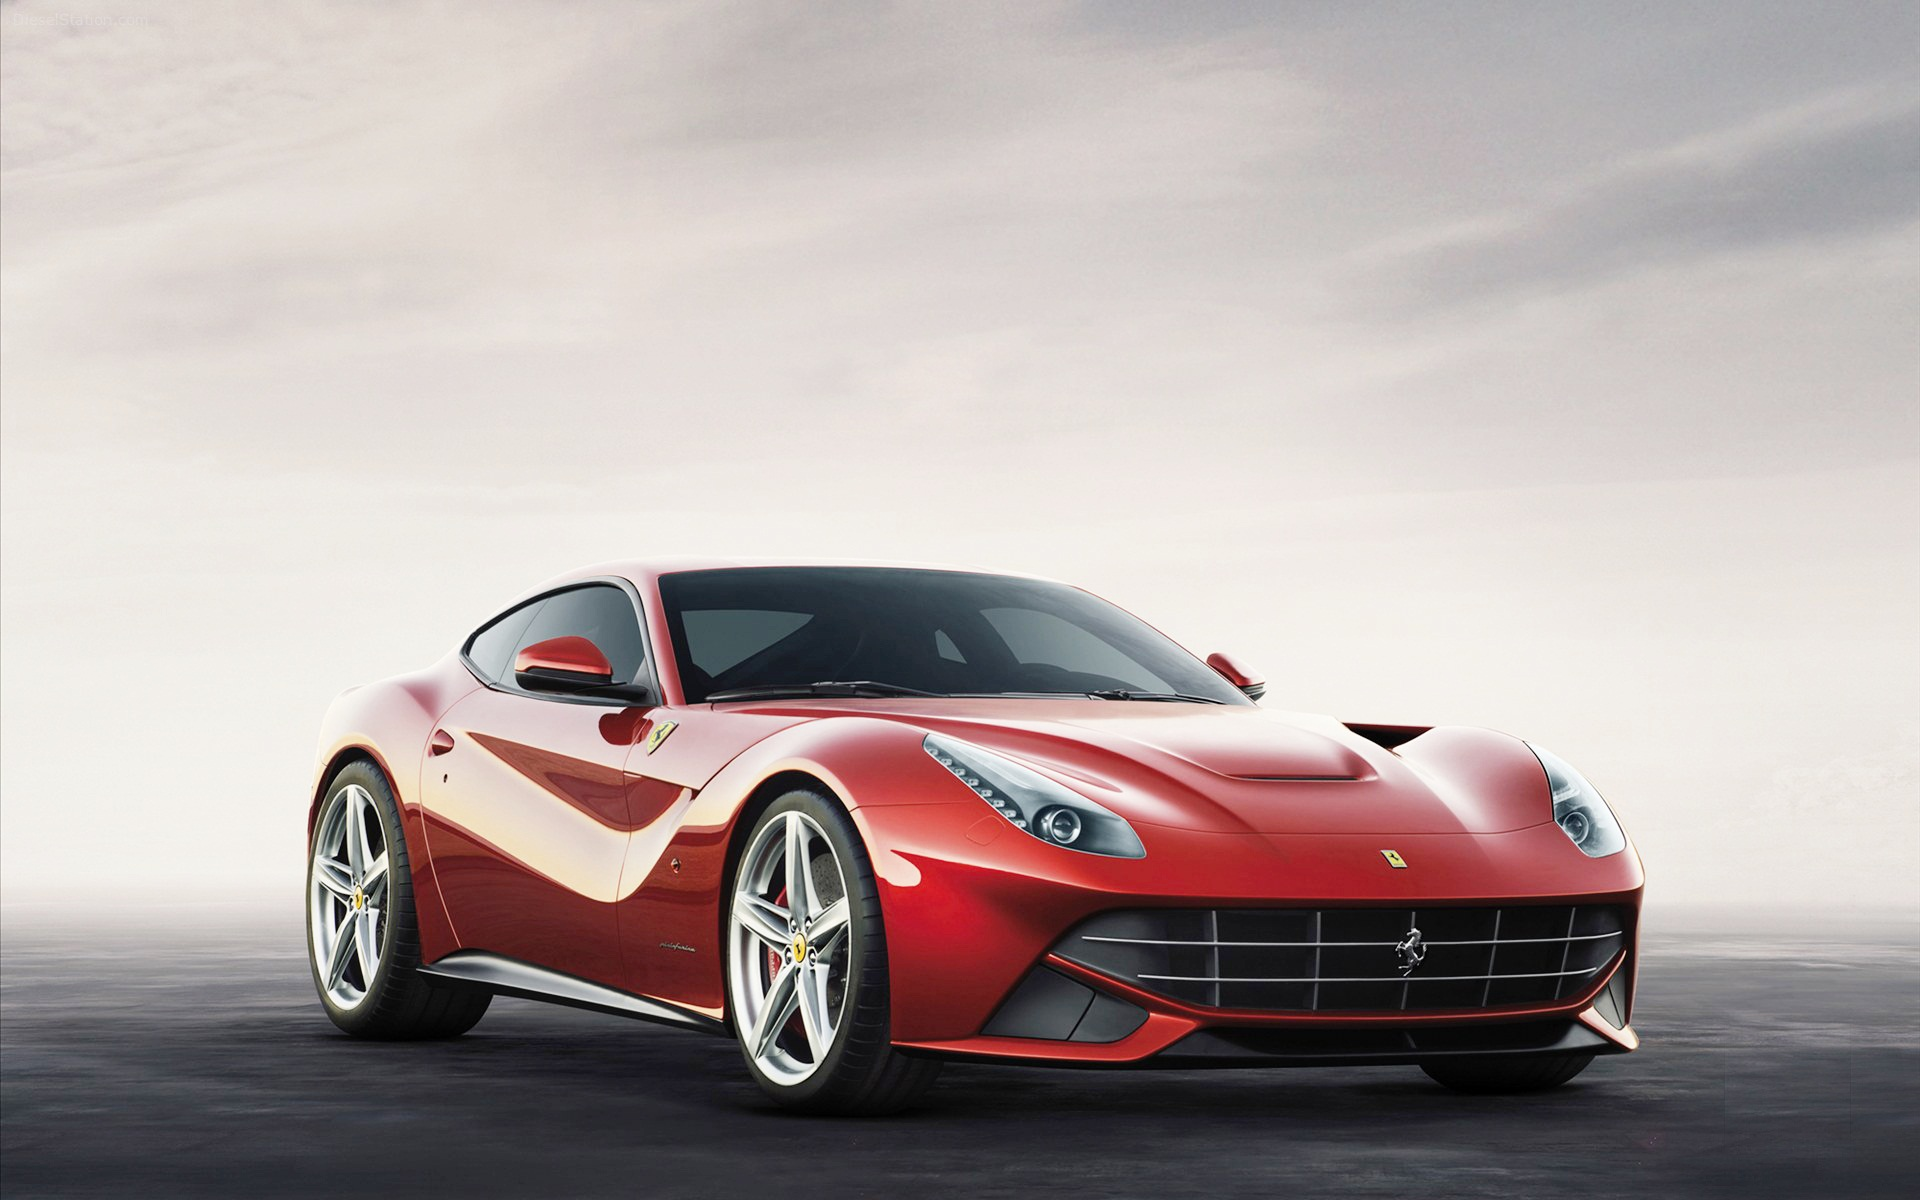 ferrari-fberlinetta-wallpaper-wp5007464